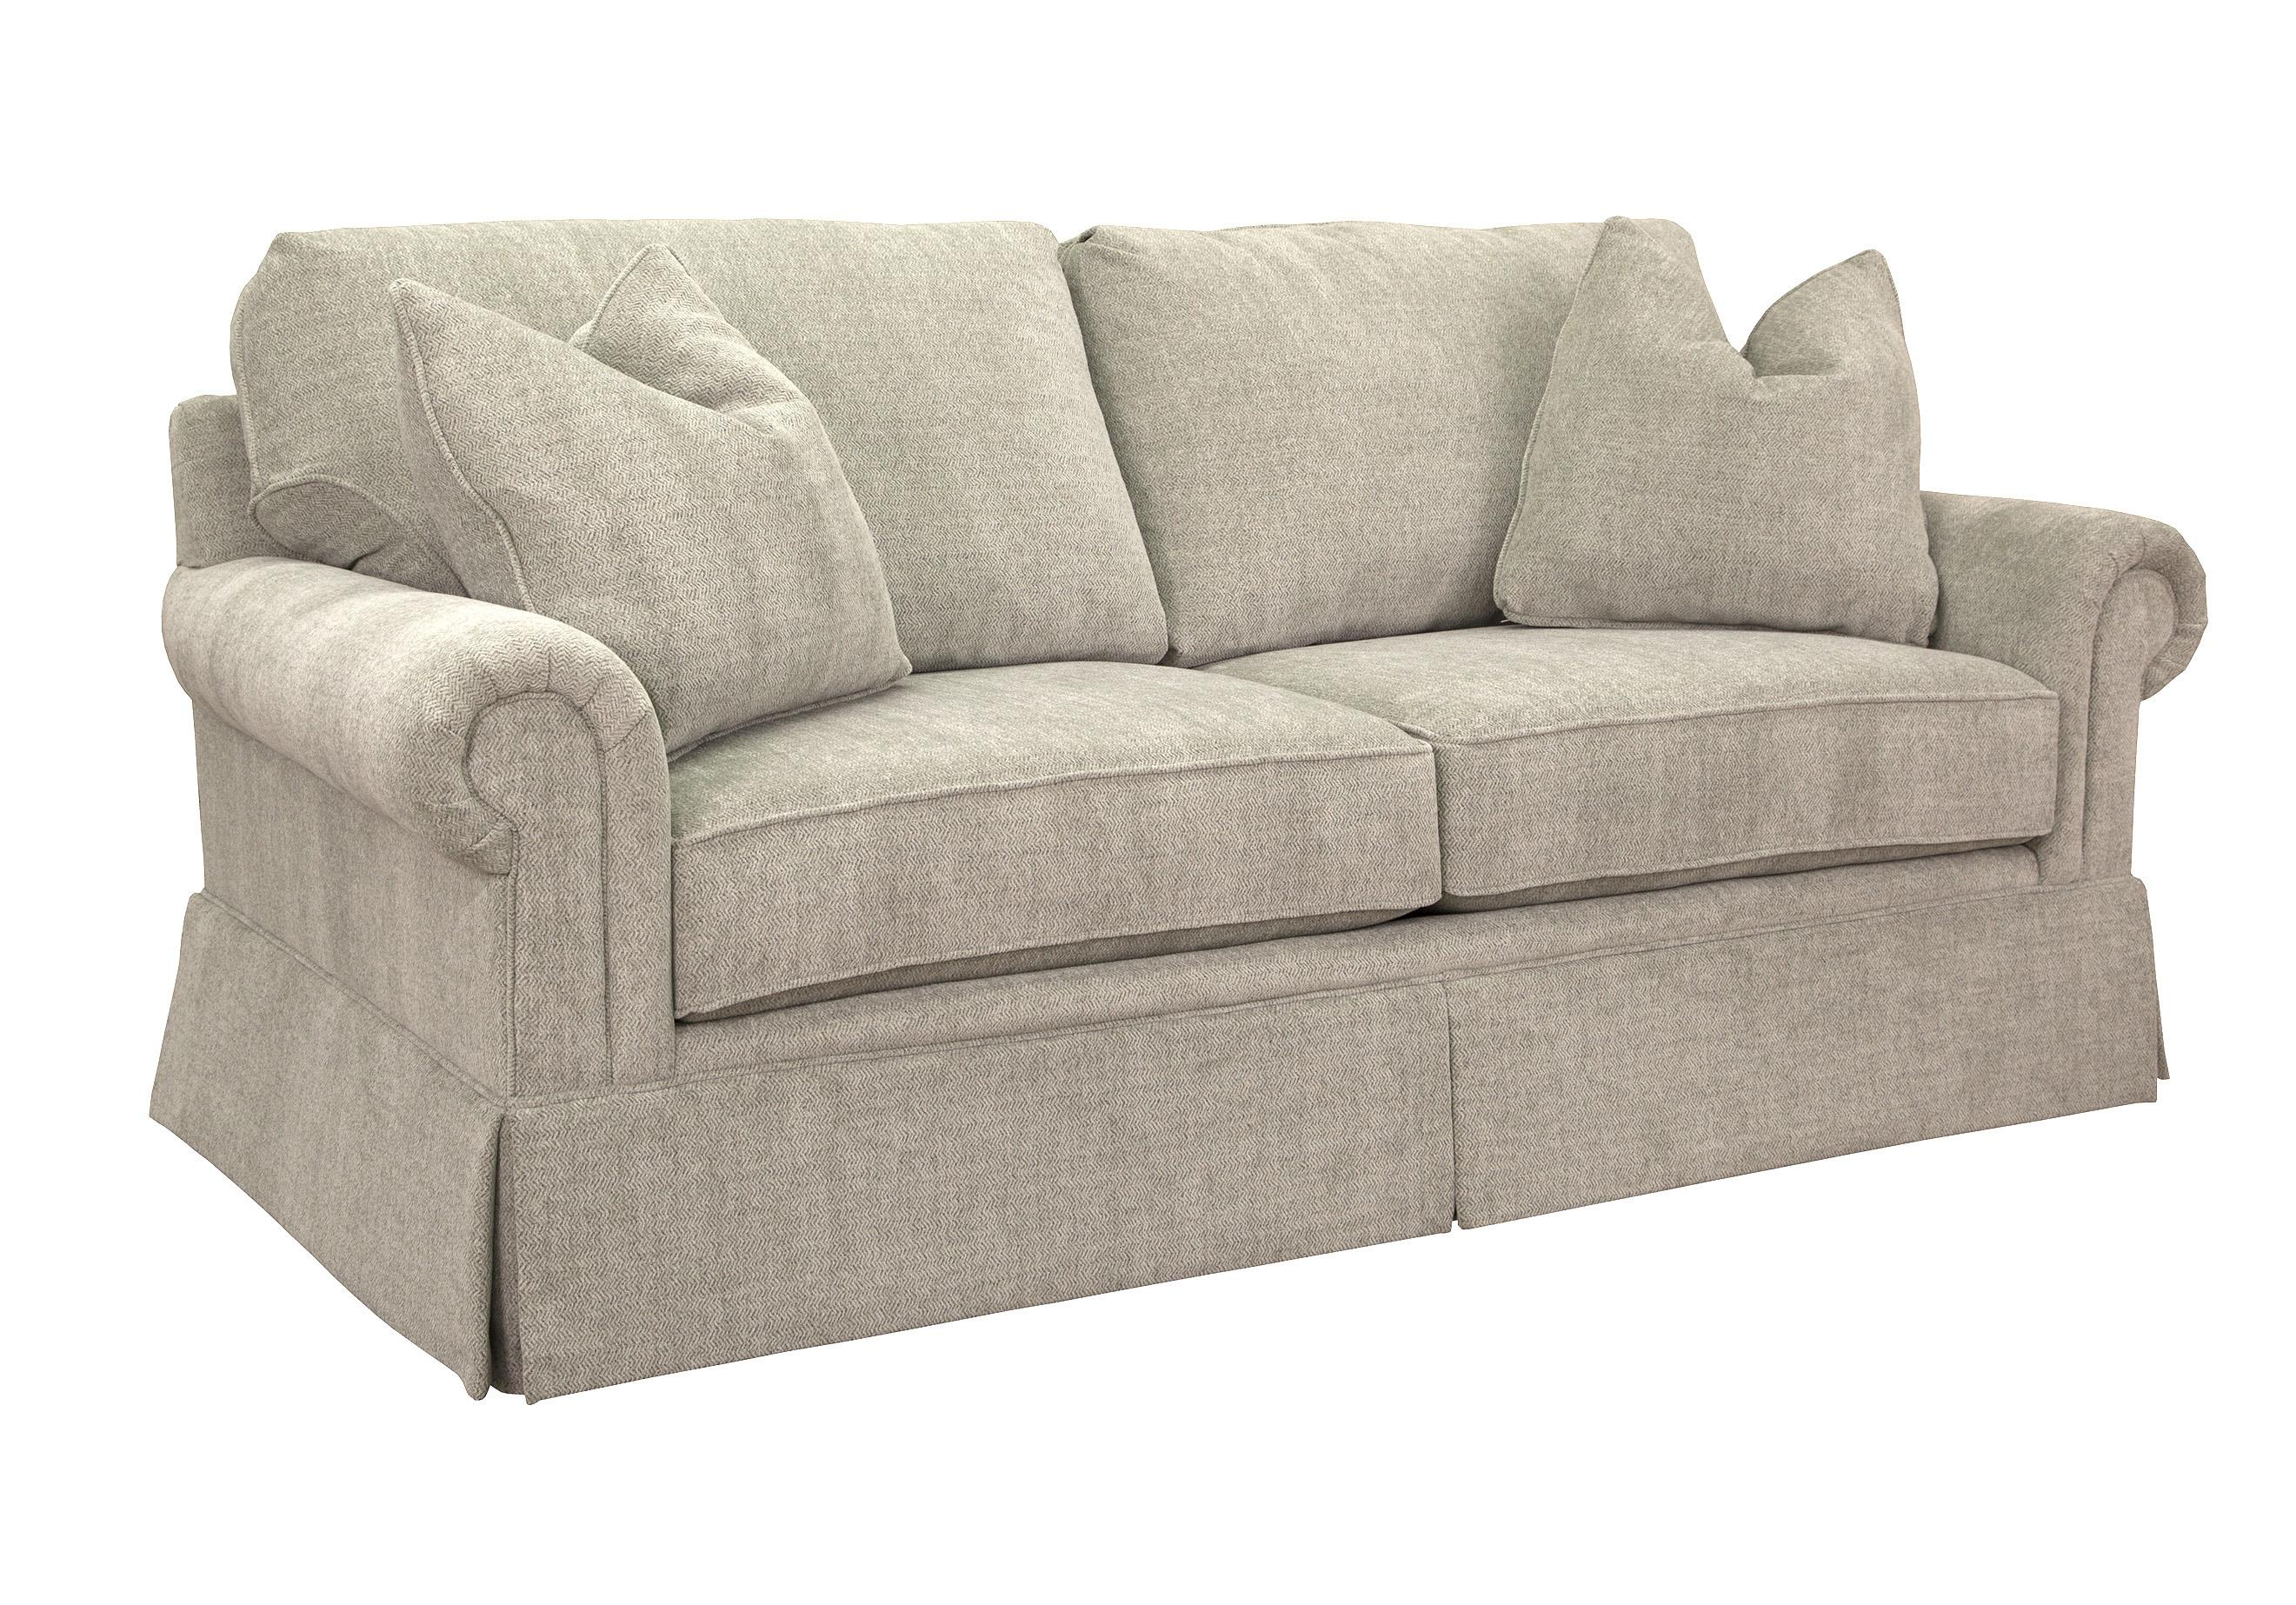 Solutions 2053 Two Cushion Sofa by Huntington House at Baer's Furniture